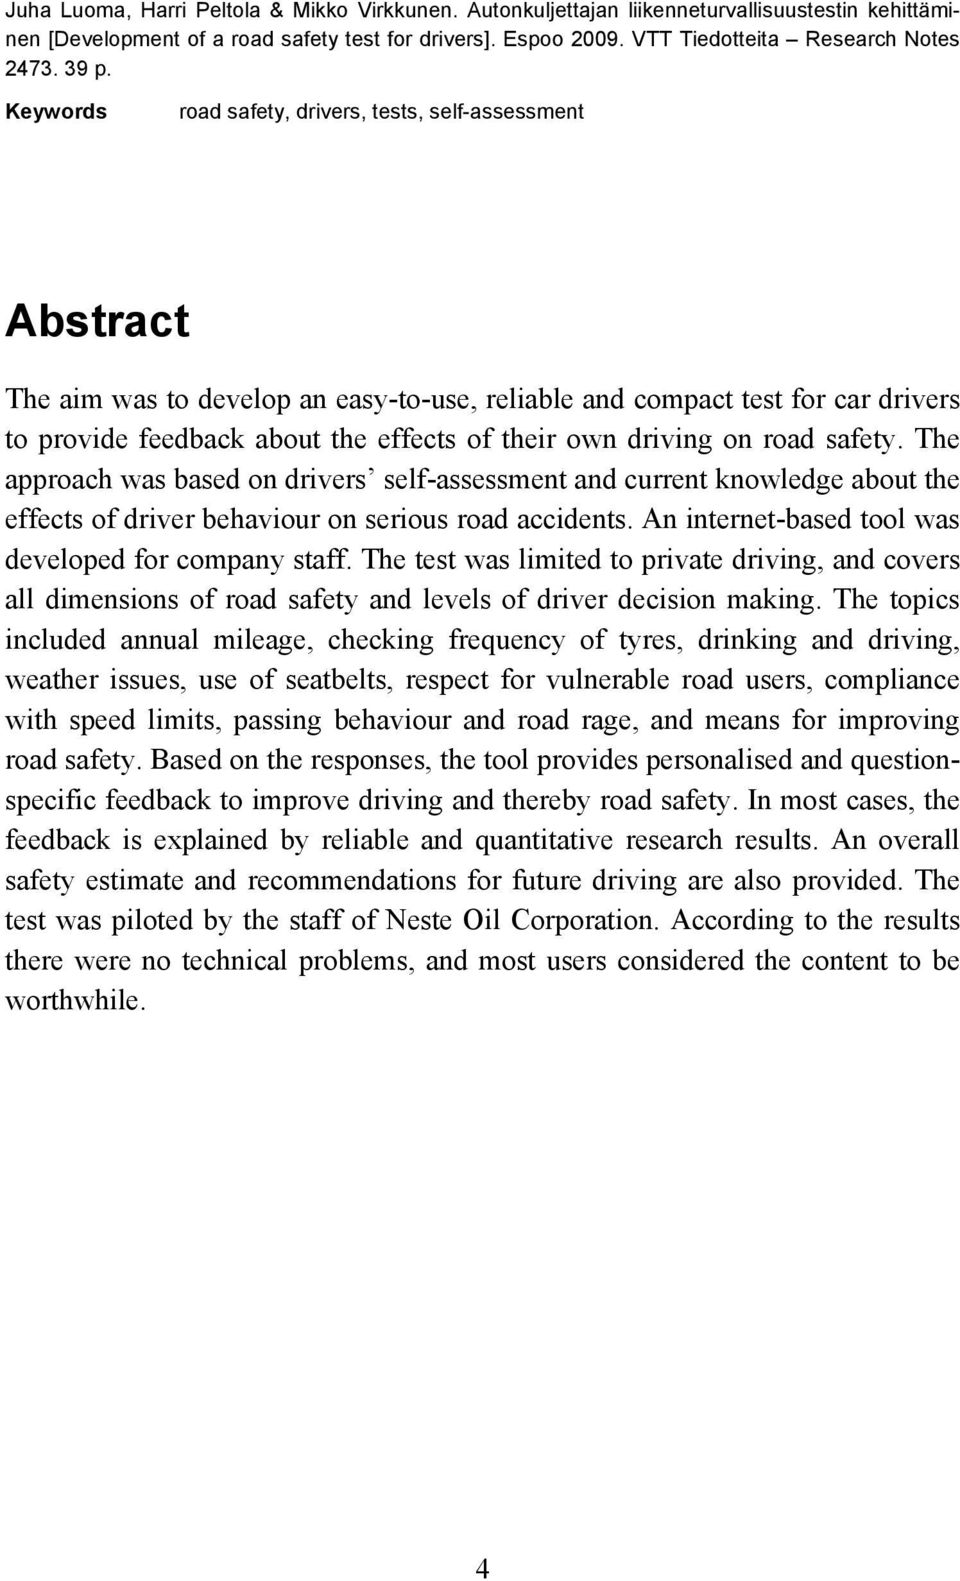 own driving on road safety. The approach was based on drivers self-assessment and current knowledge about the effects of driver behaviour on serious road accidents.